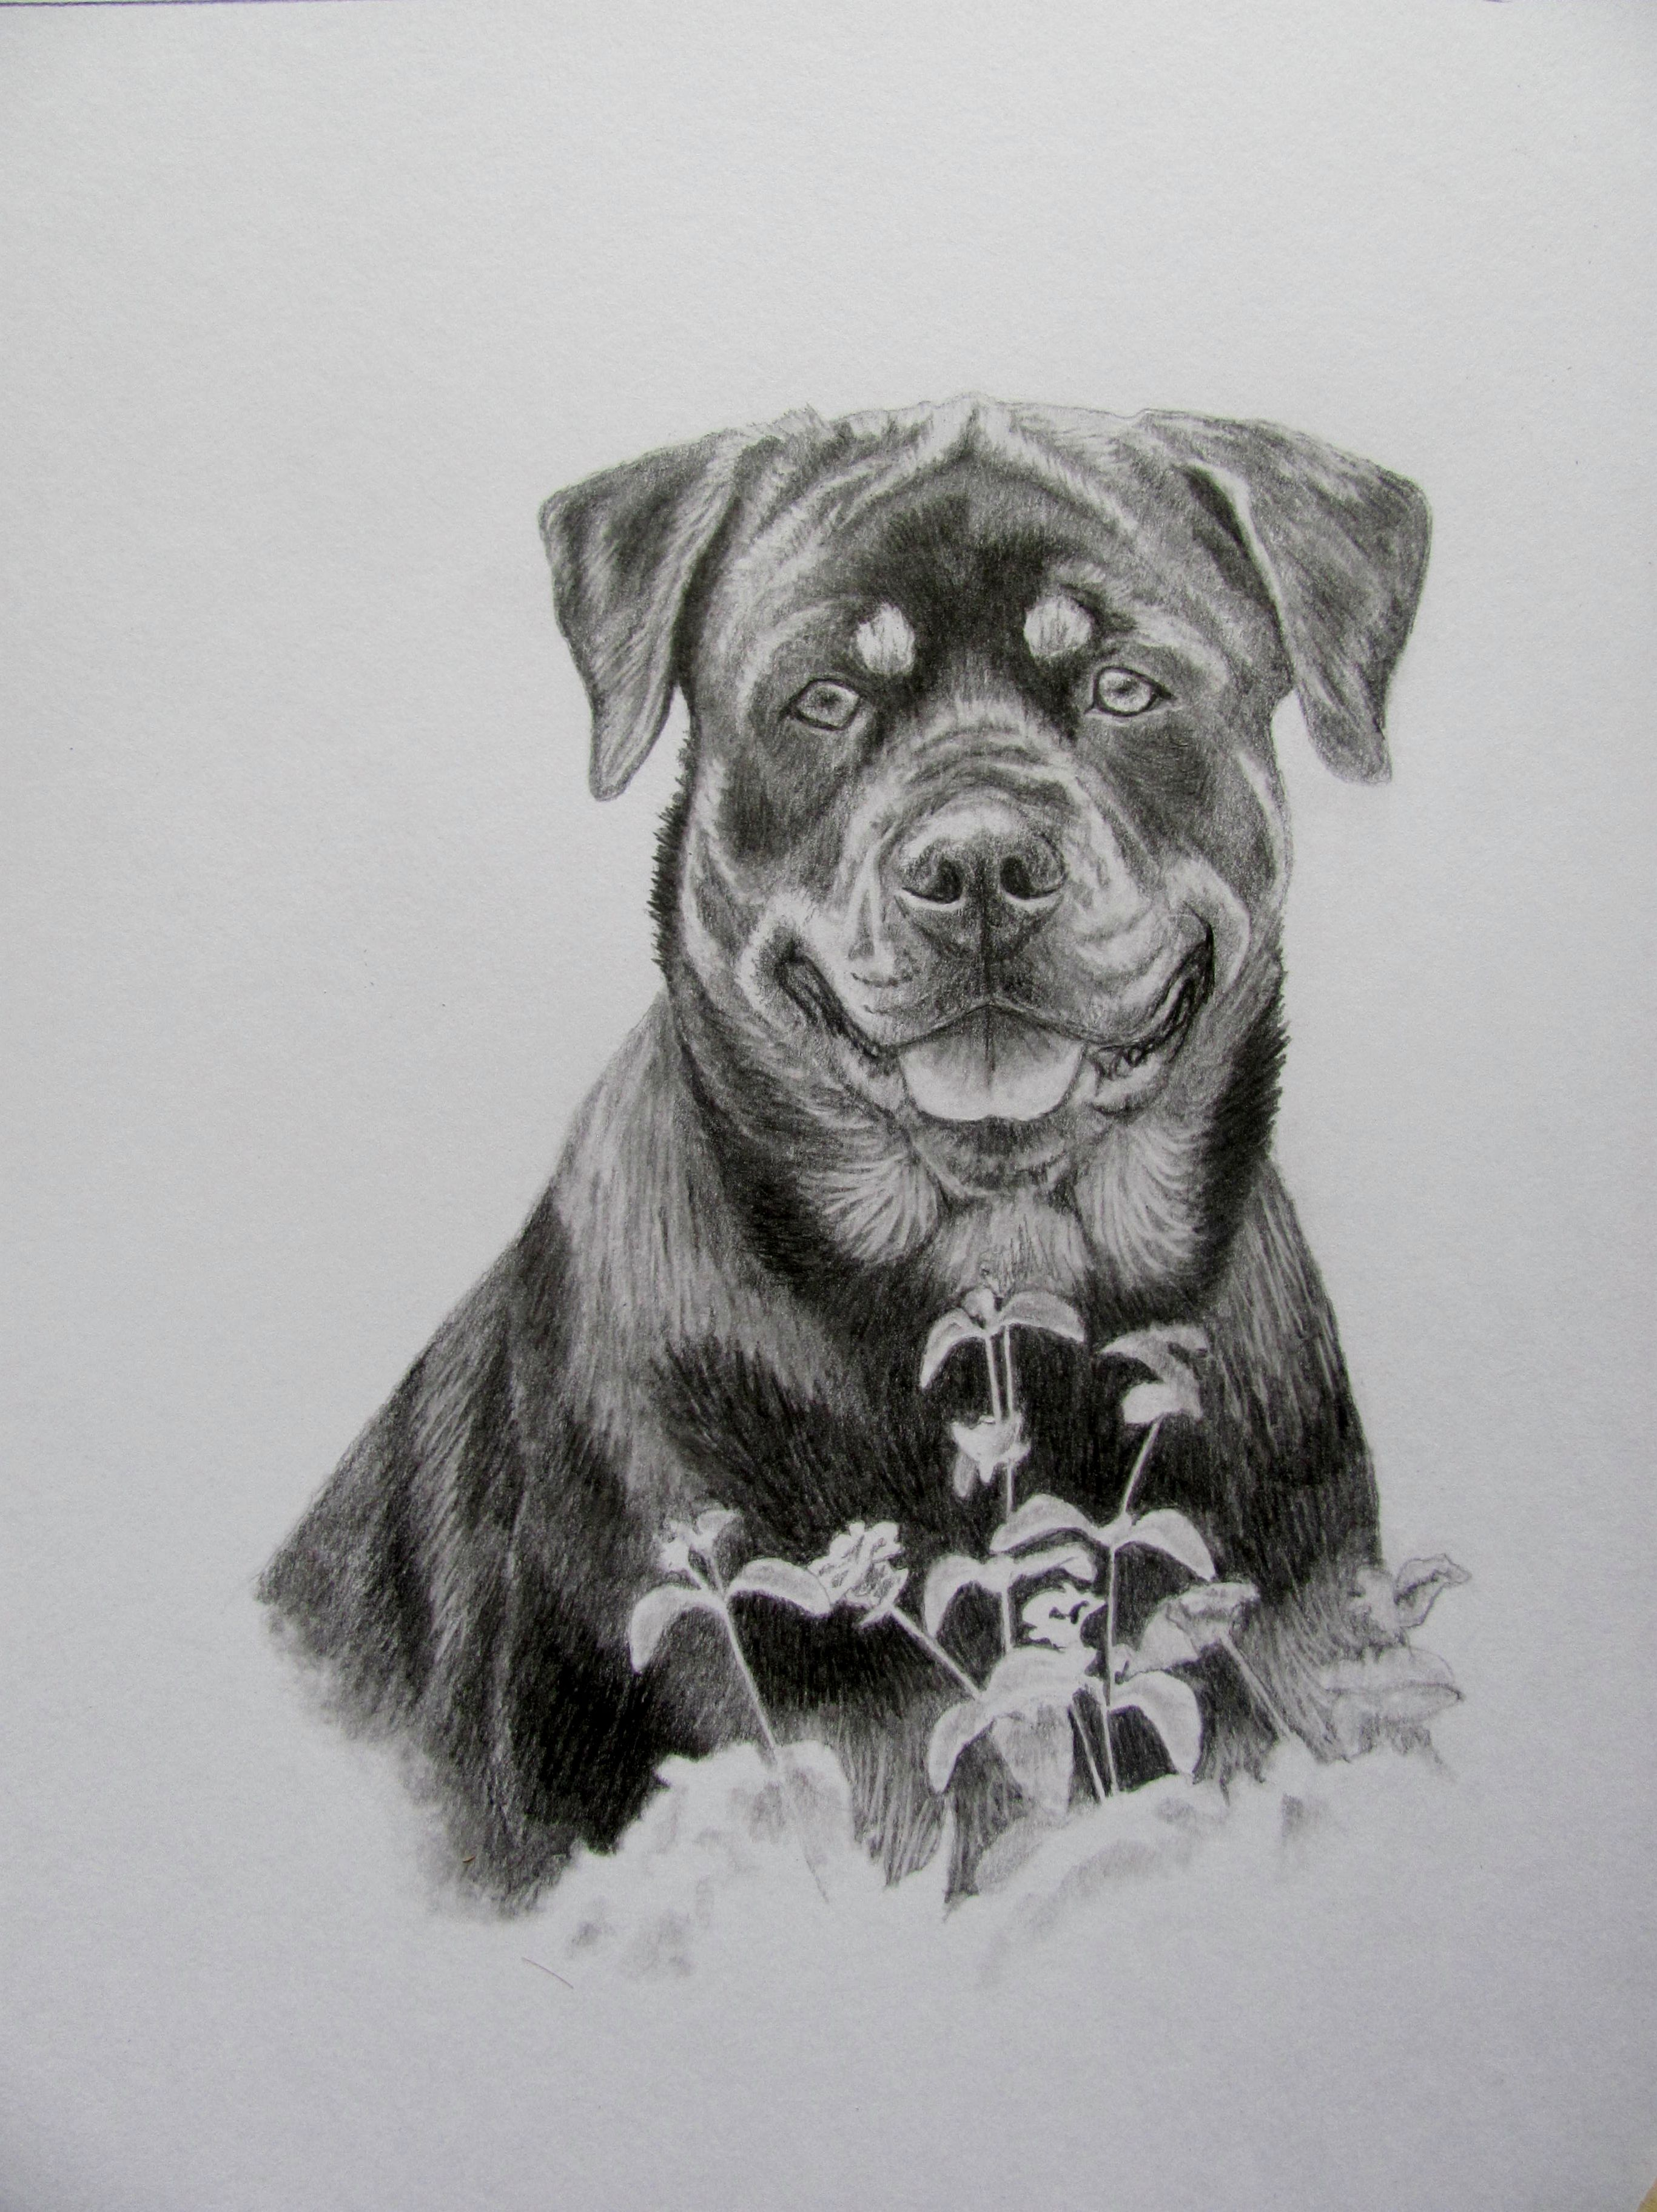 The Rottweiler Sketch I Just Finished Done In Graphite Pencil In